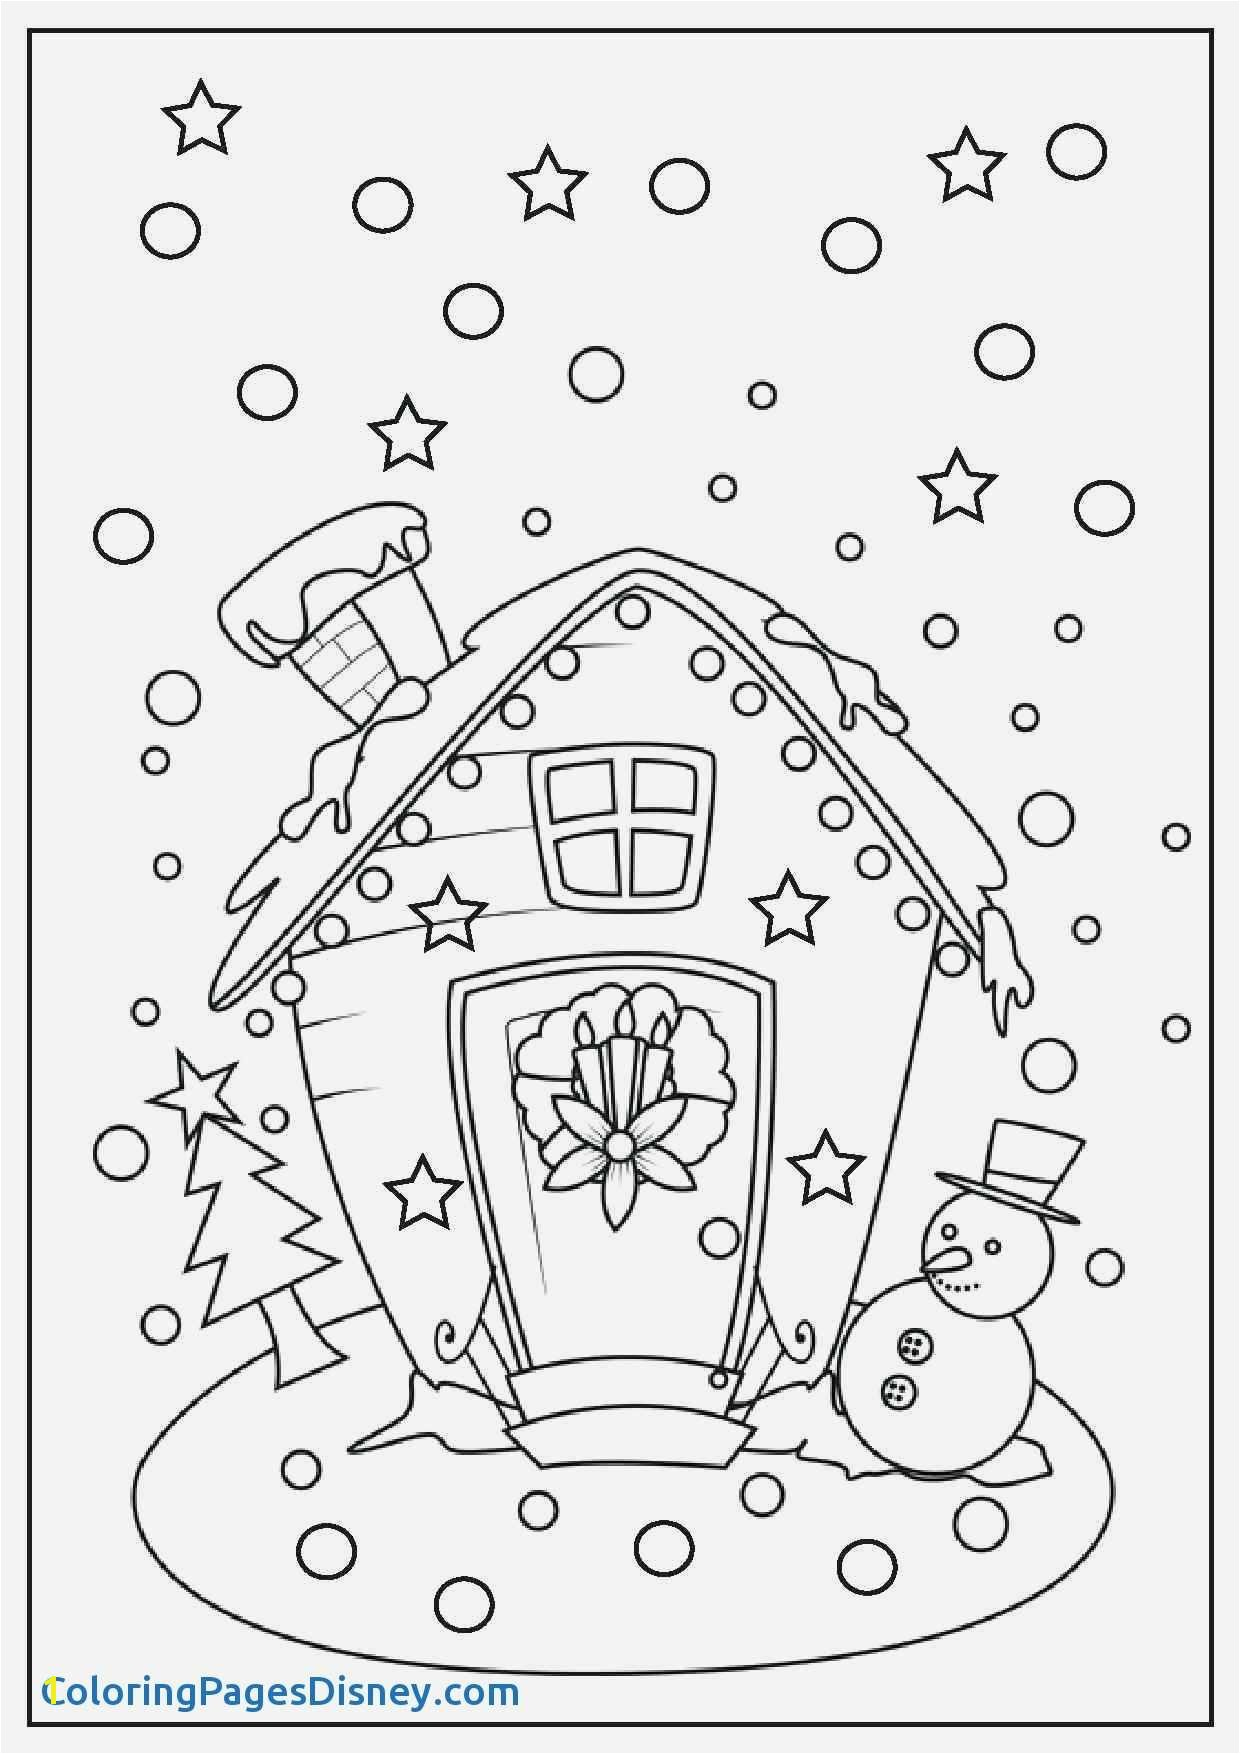 Disney Christmas Coloring Pages Luxury Cool Coloring Pages Printable New Printable Cds 0d Coloring Pages